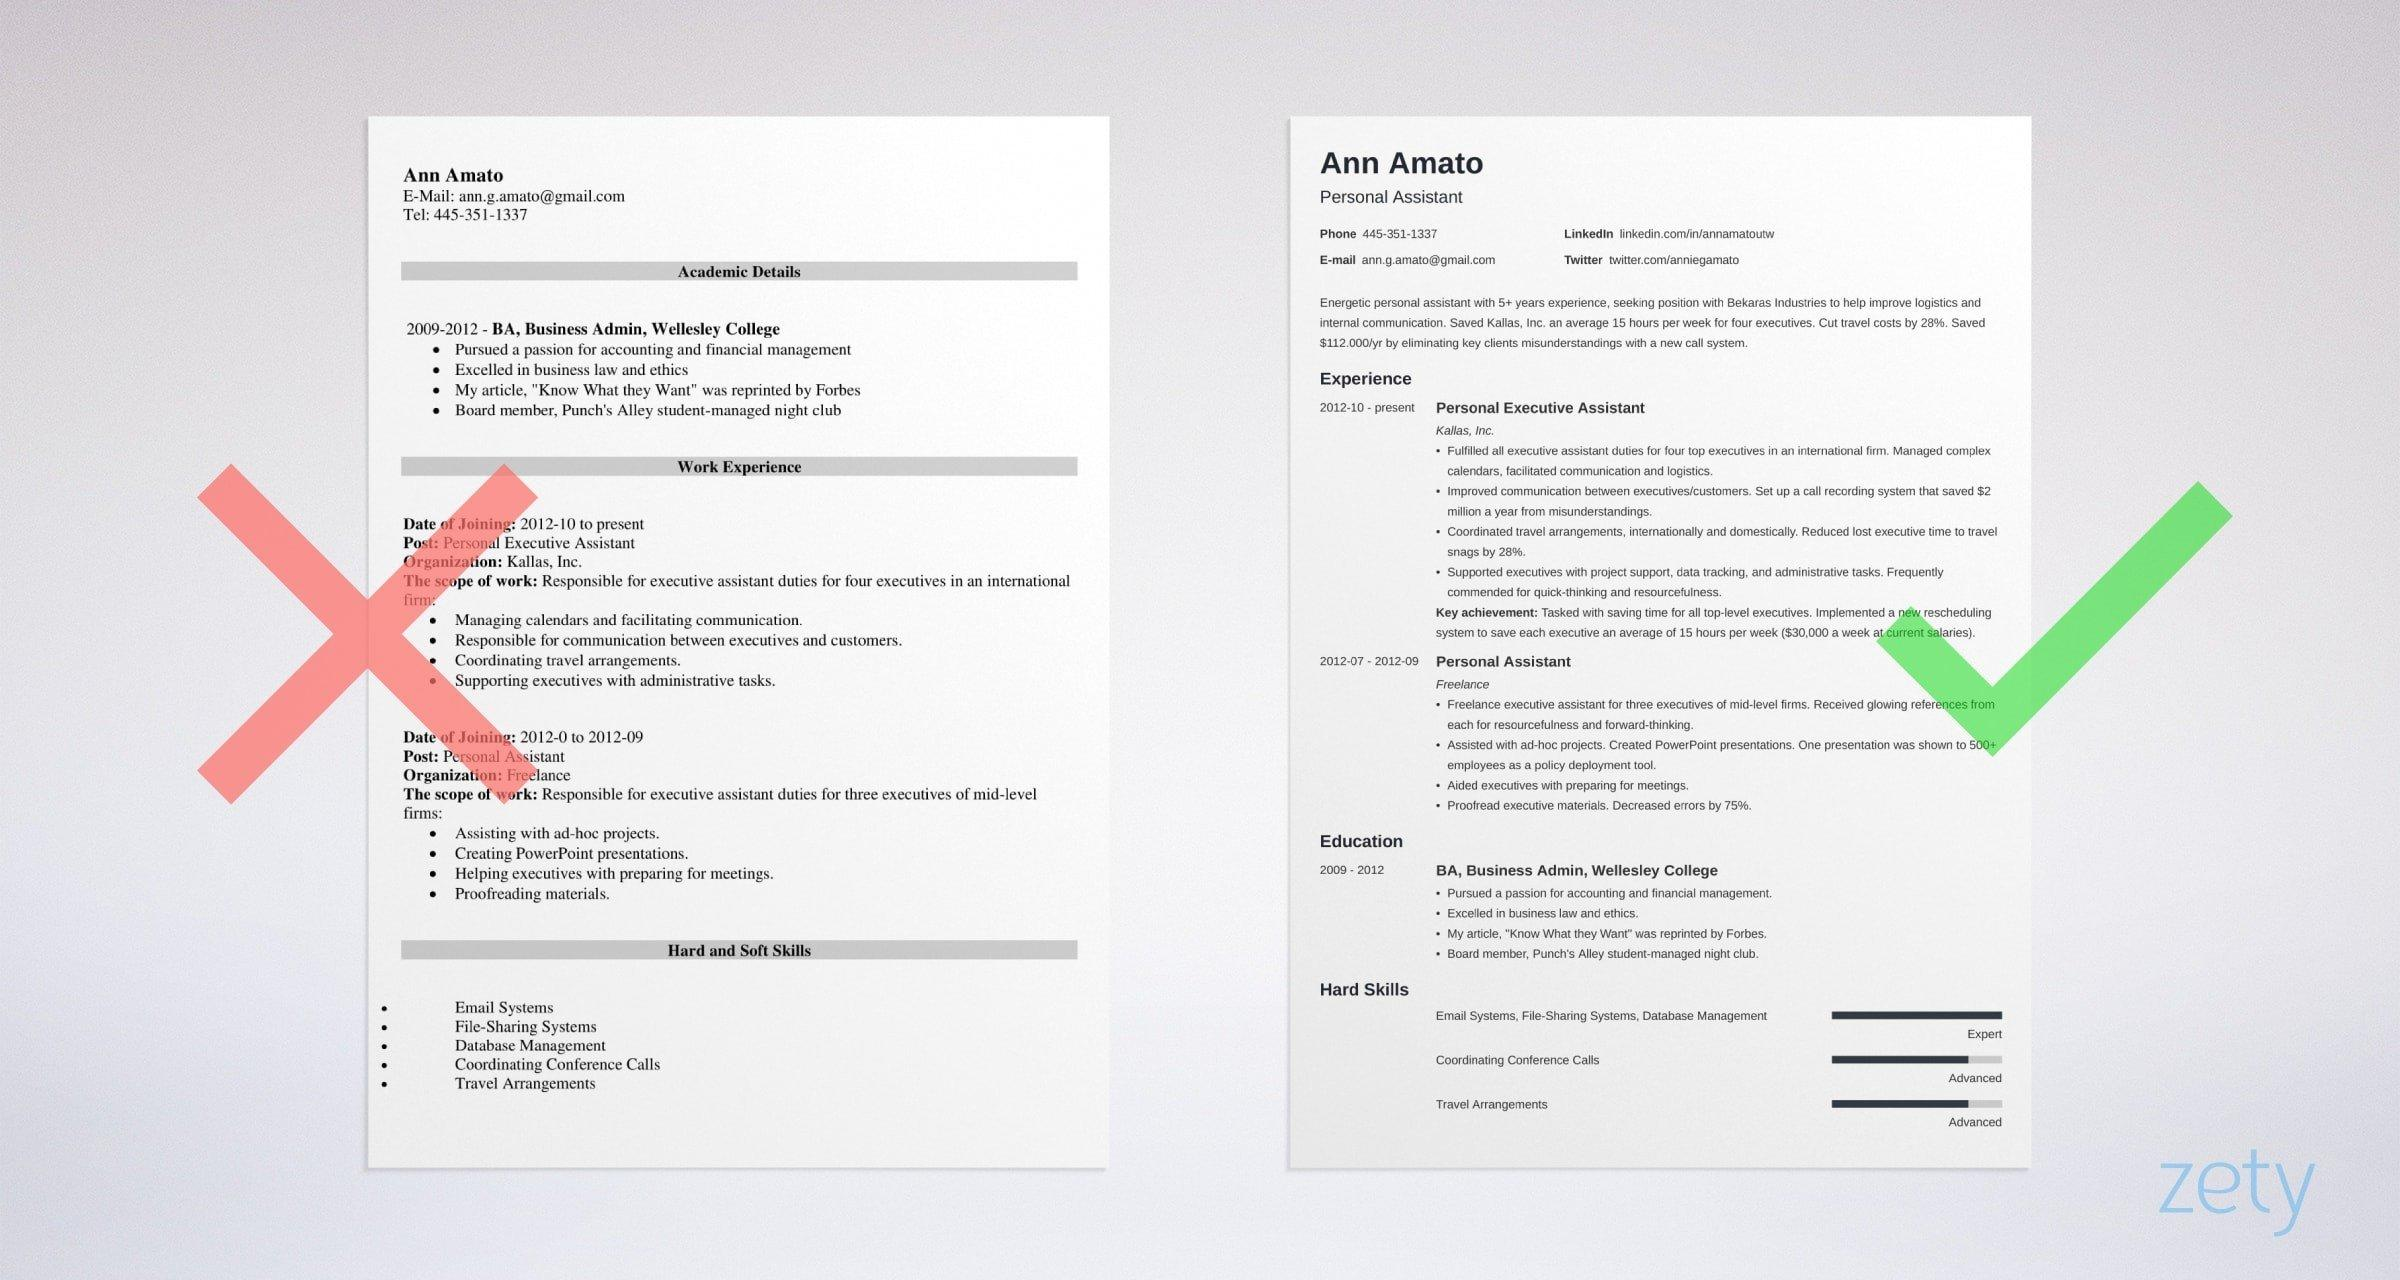 99 Inspirational Sample Resume Format for Images